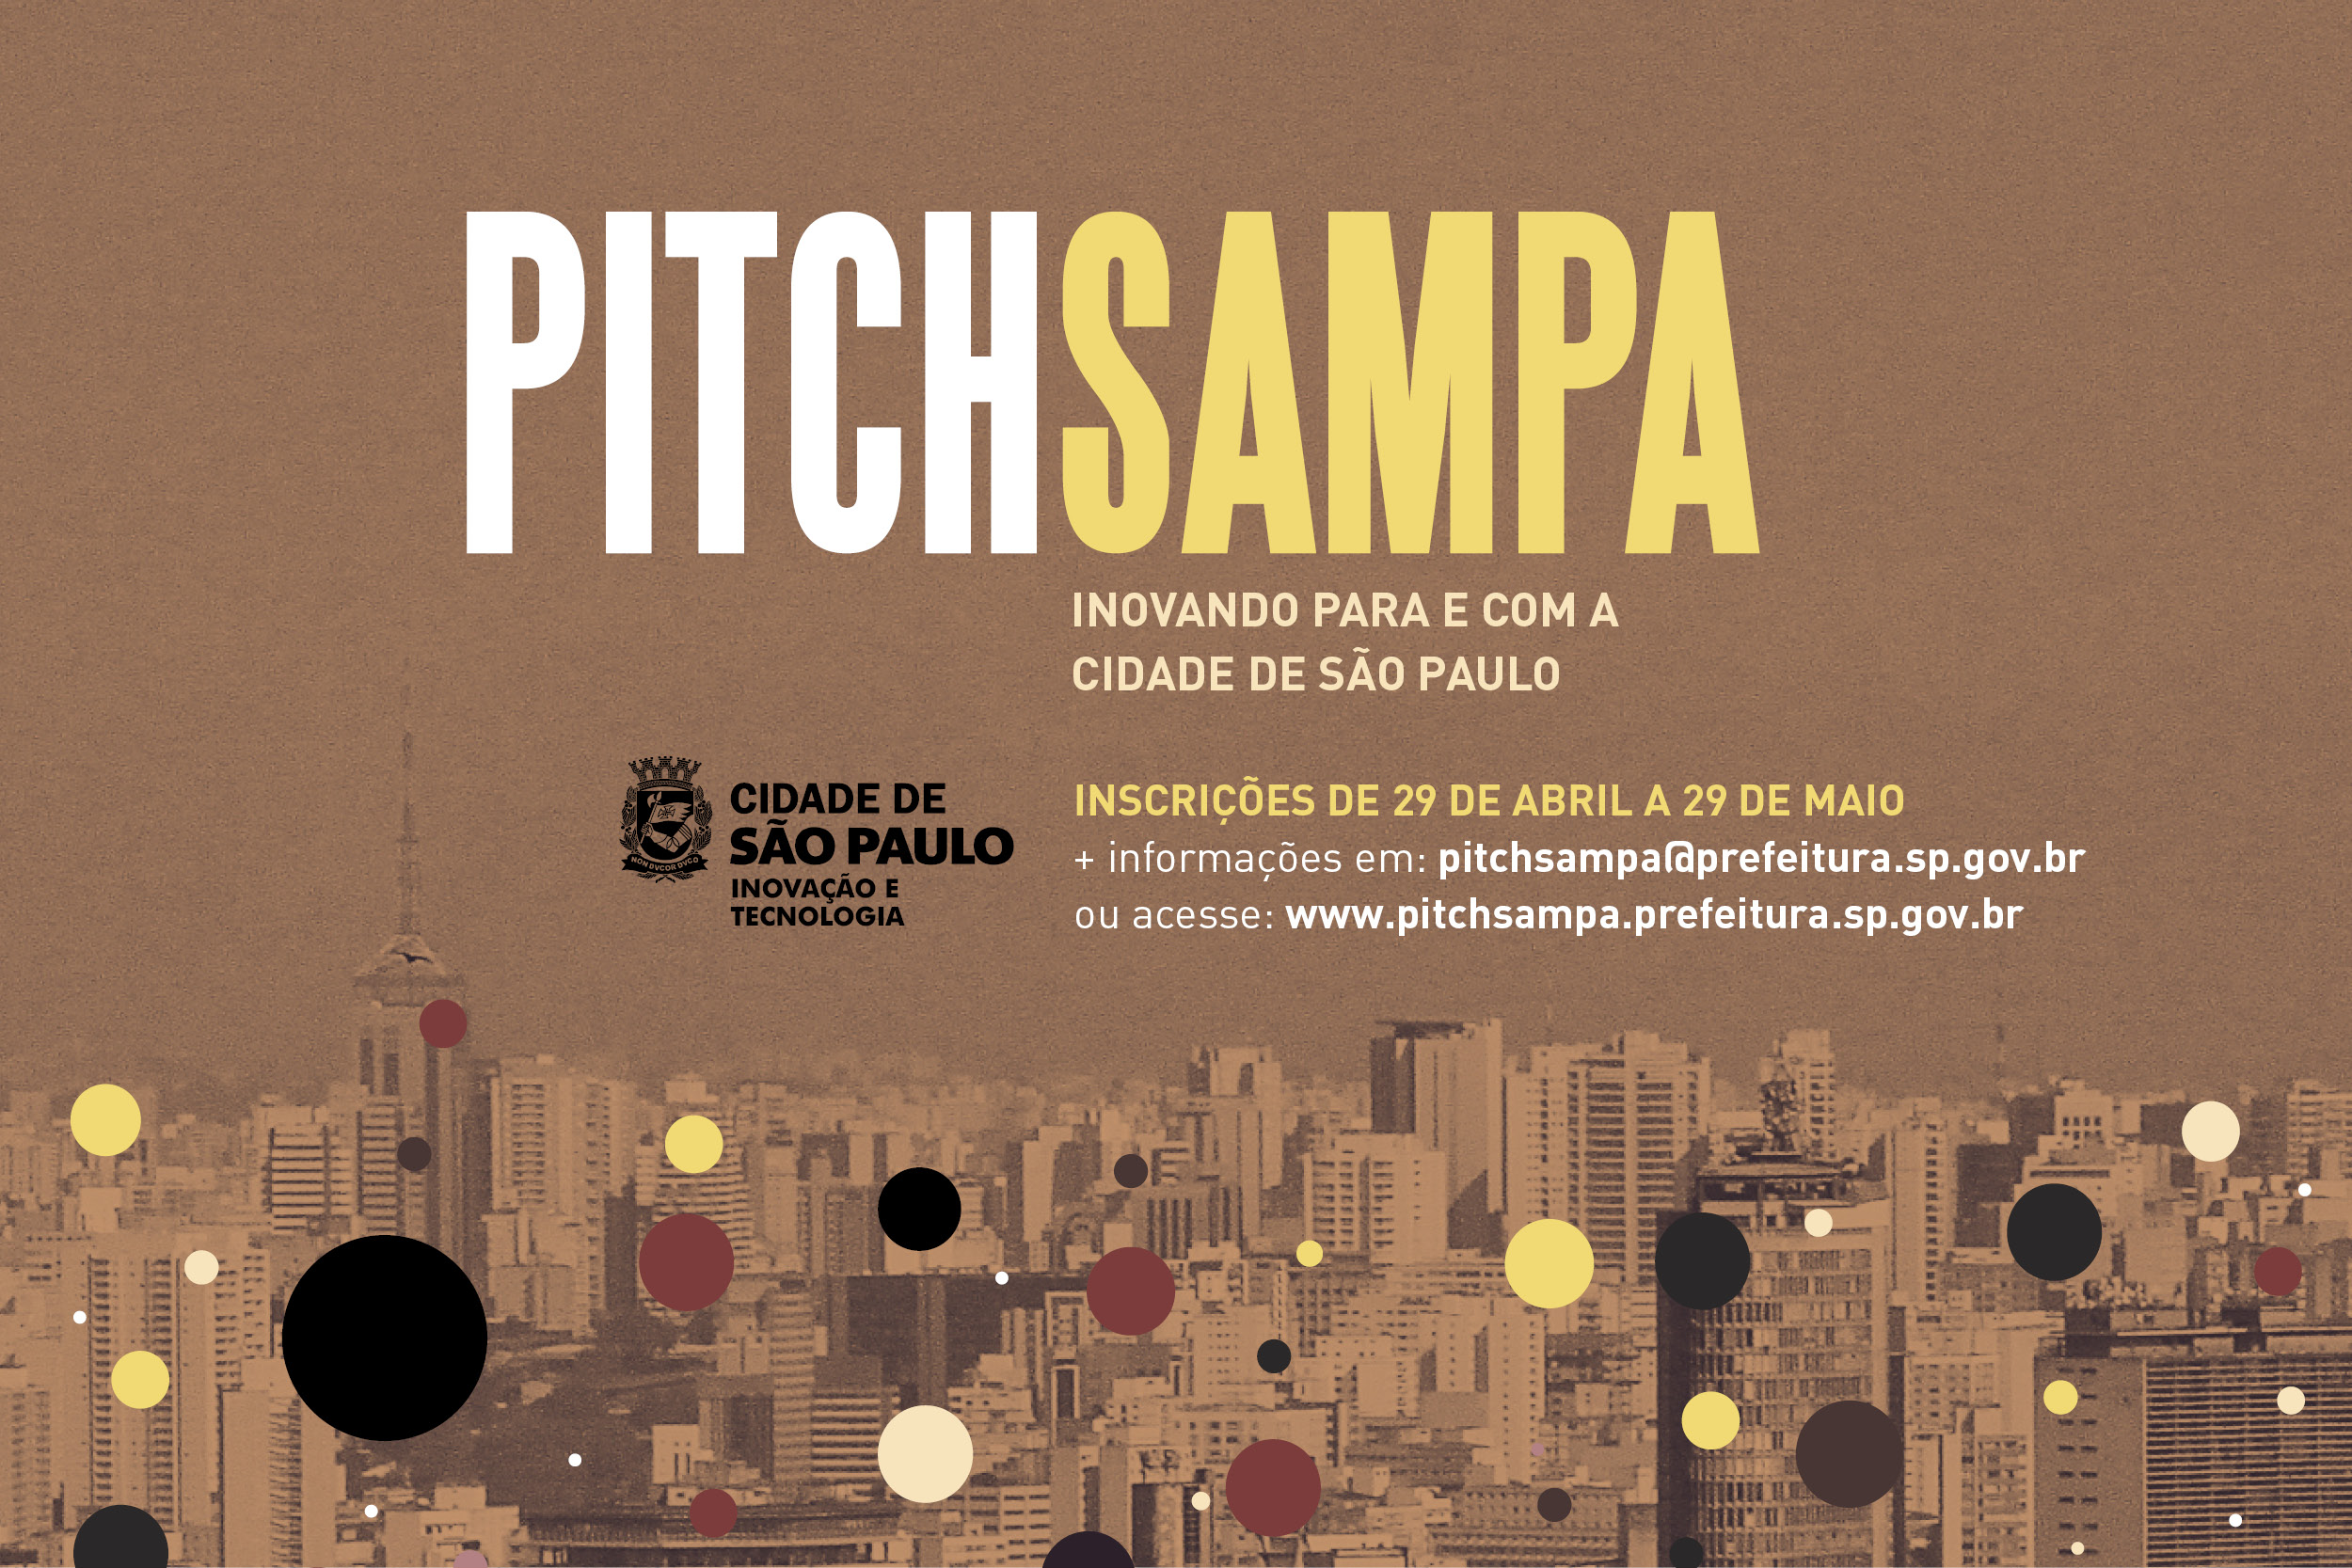 HEADER E MAIL MKT pitchsampa